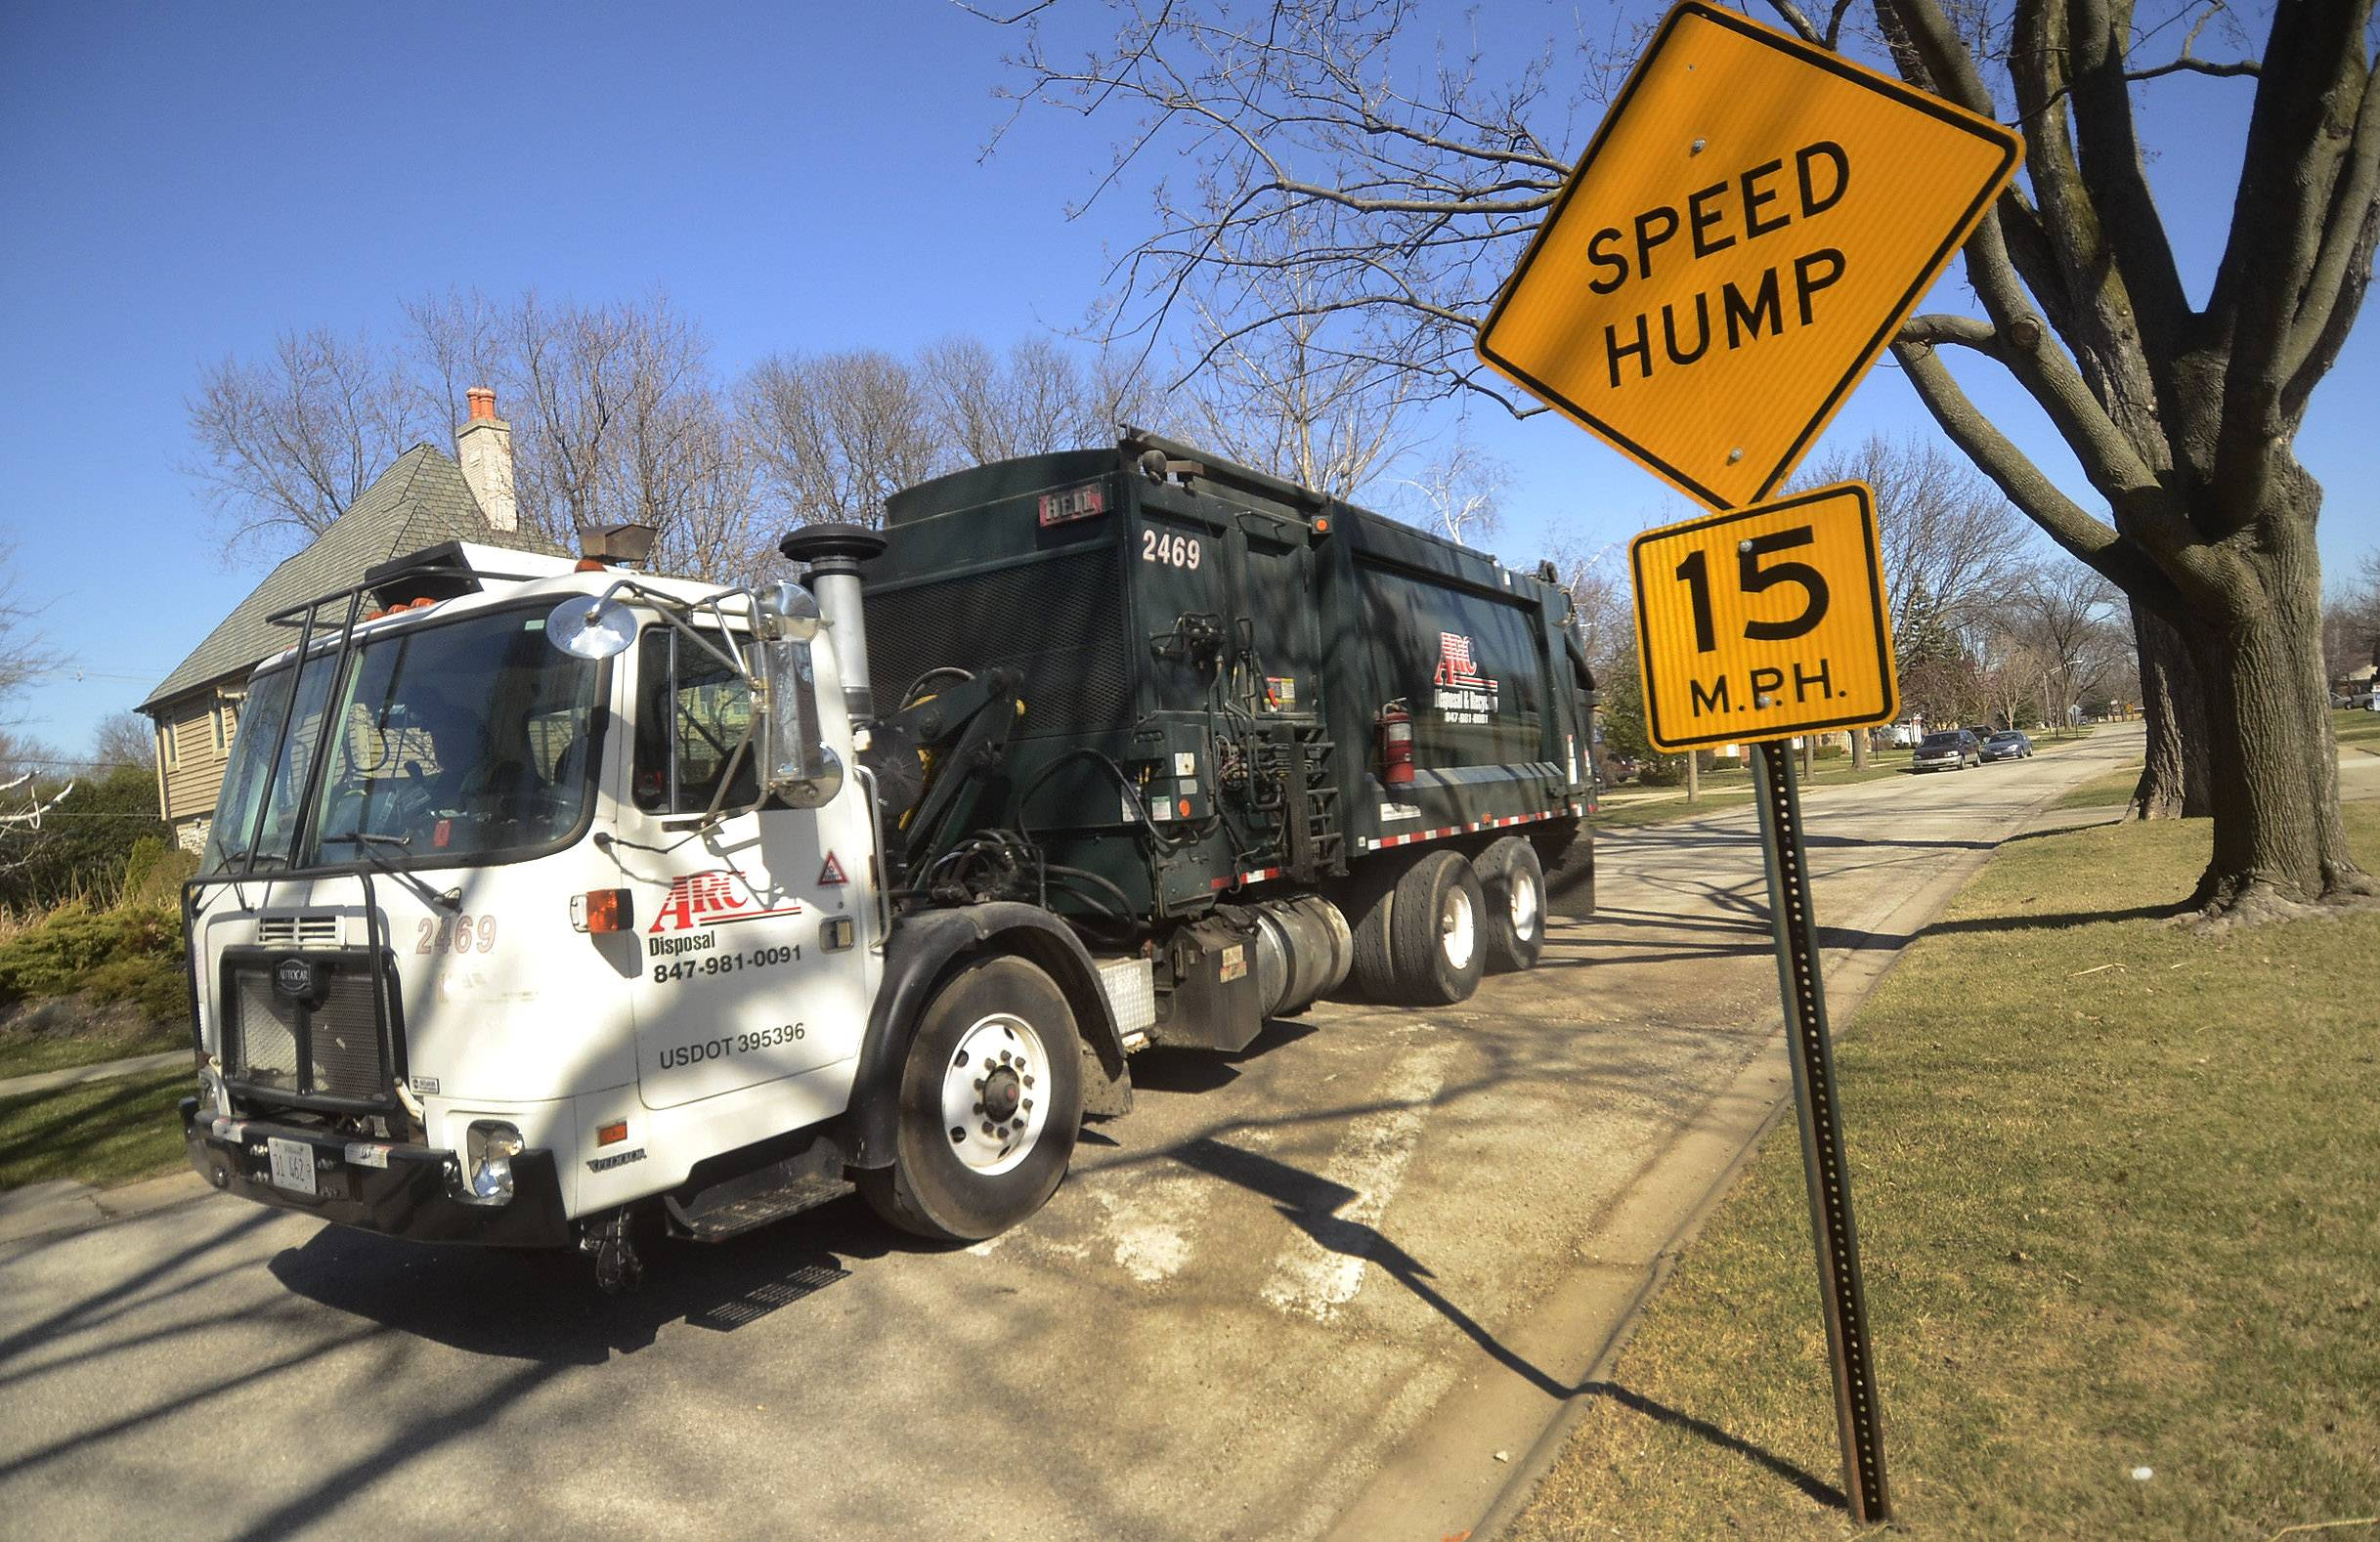 An ARC Disposal truck slows down for a speed hump on South See Gwun Avenue in Mount Prospect.